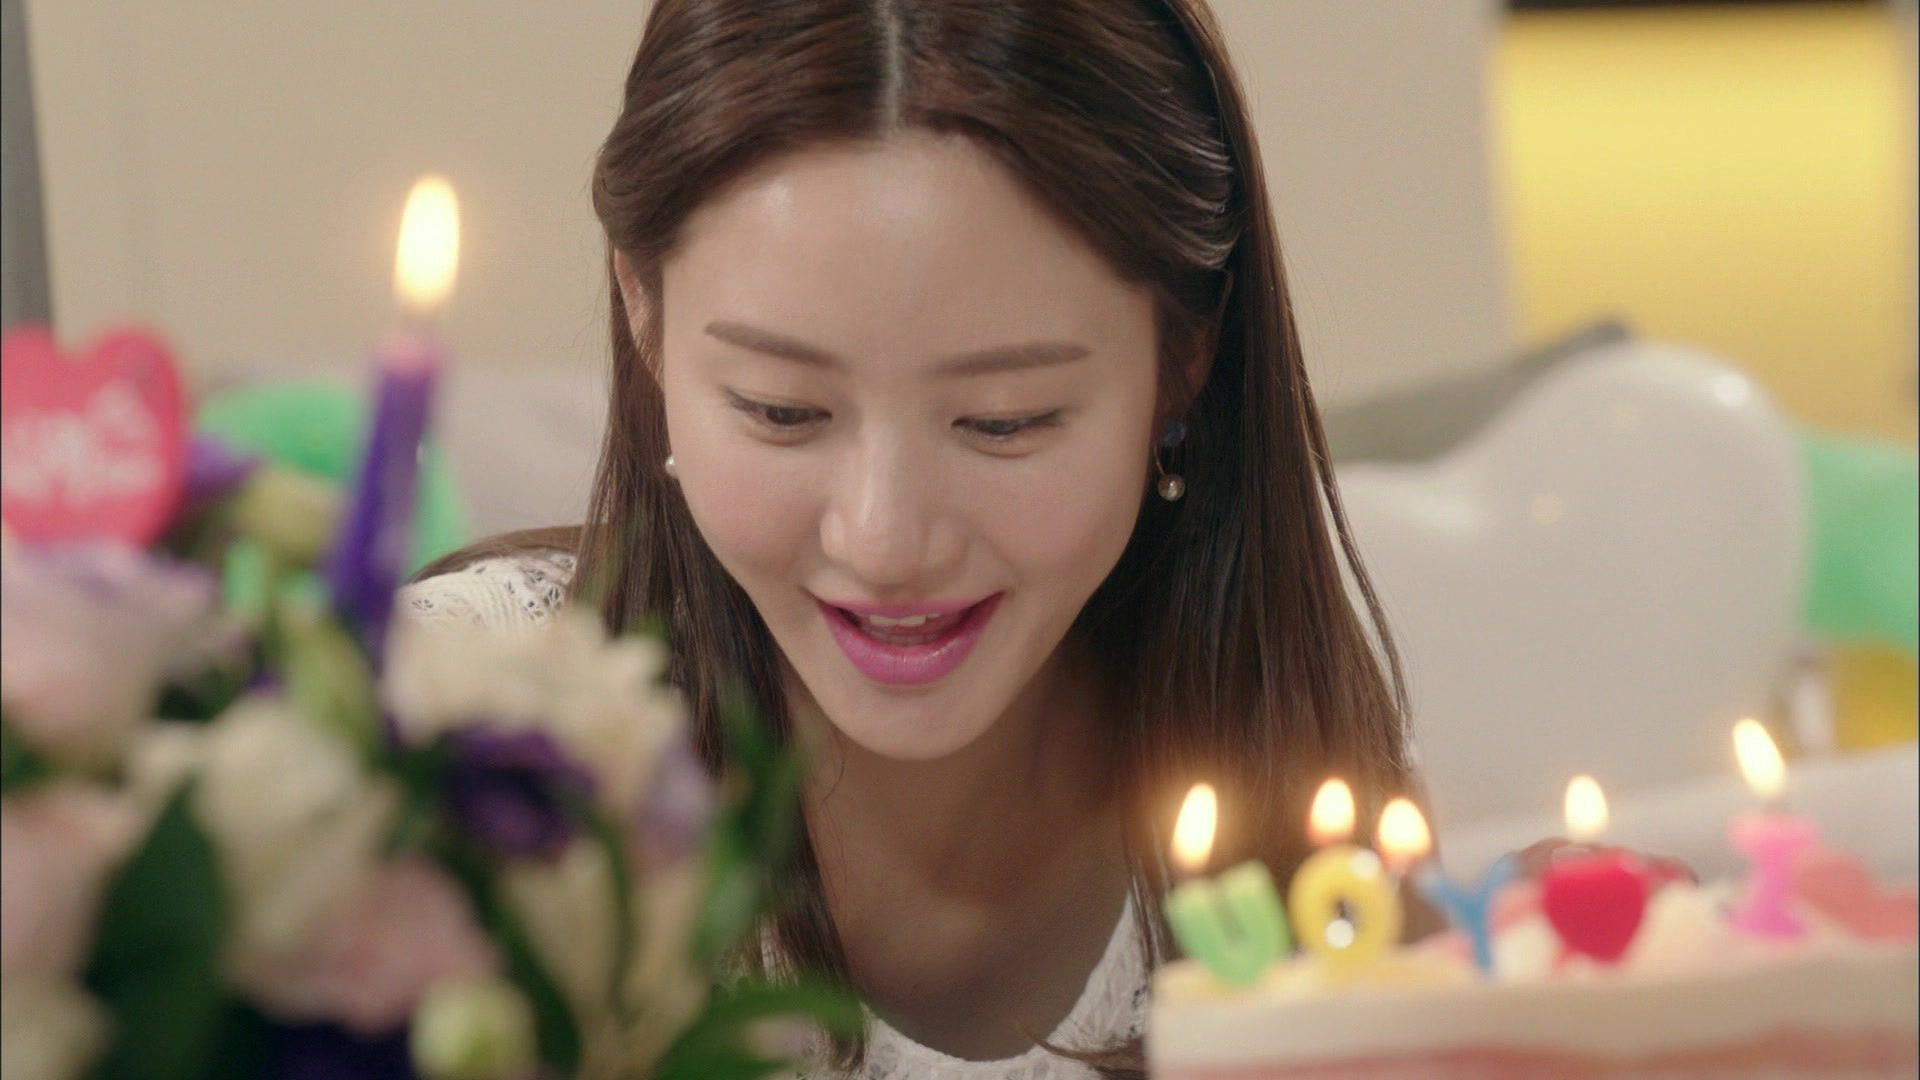 Marriage not dating 04 vostfr the dark